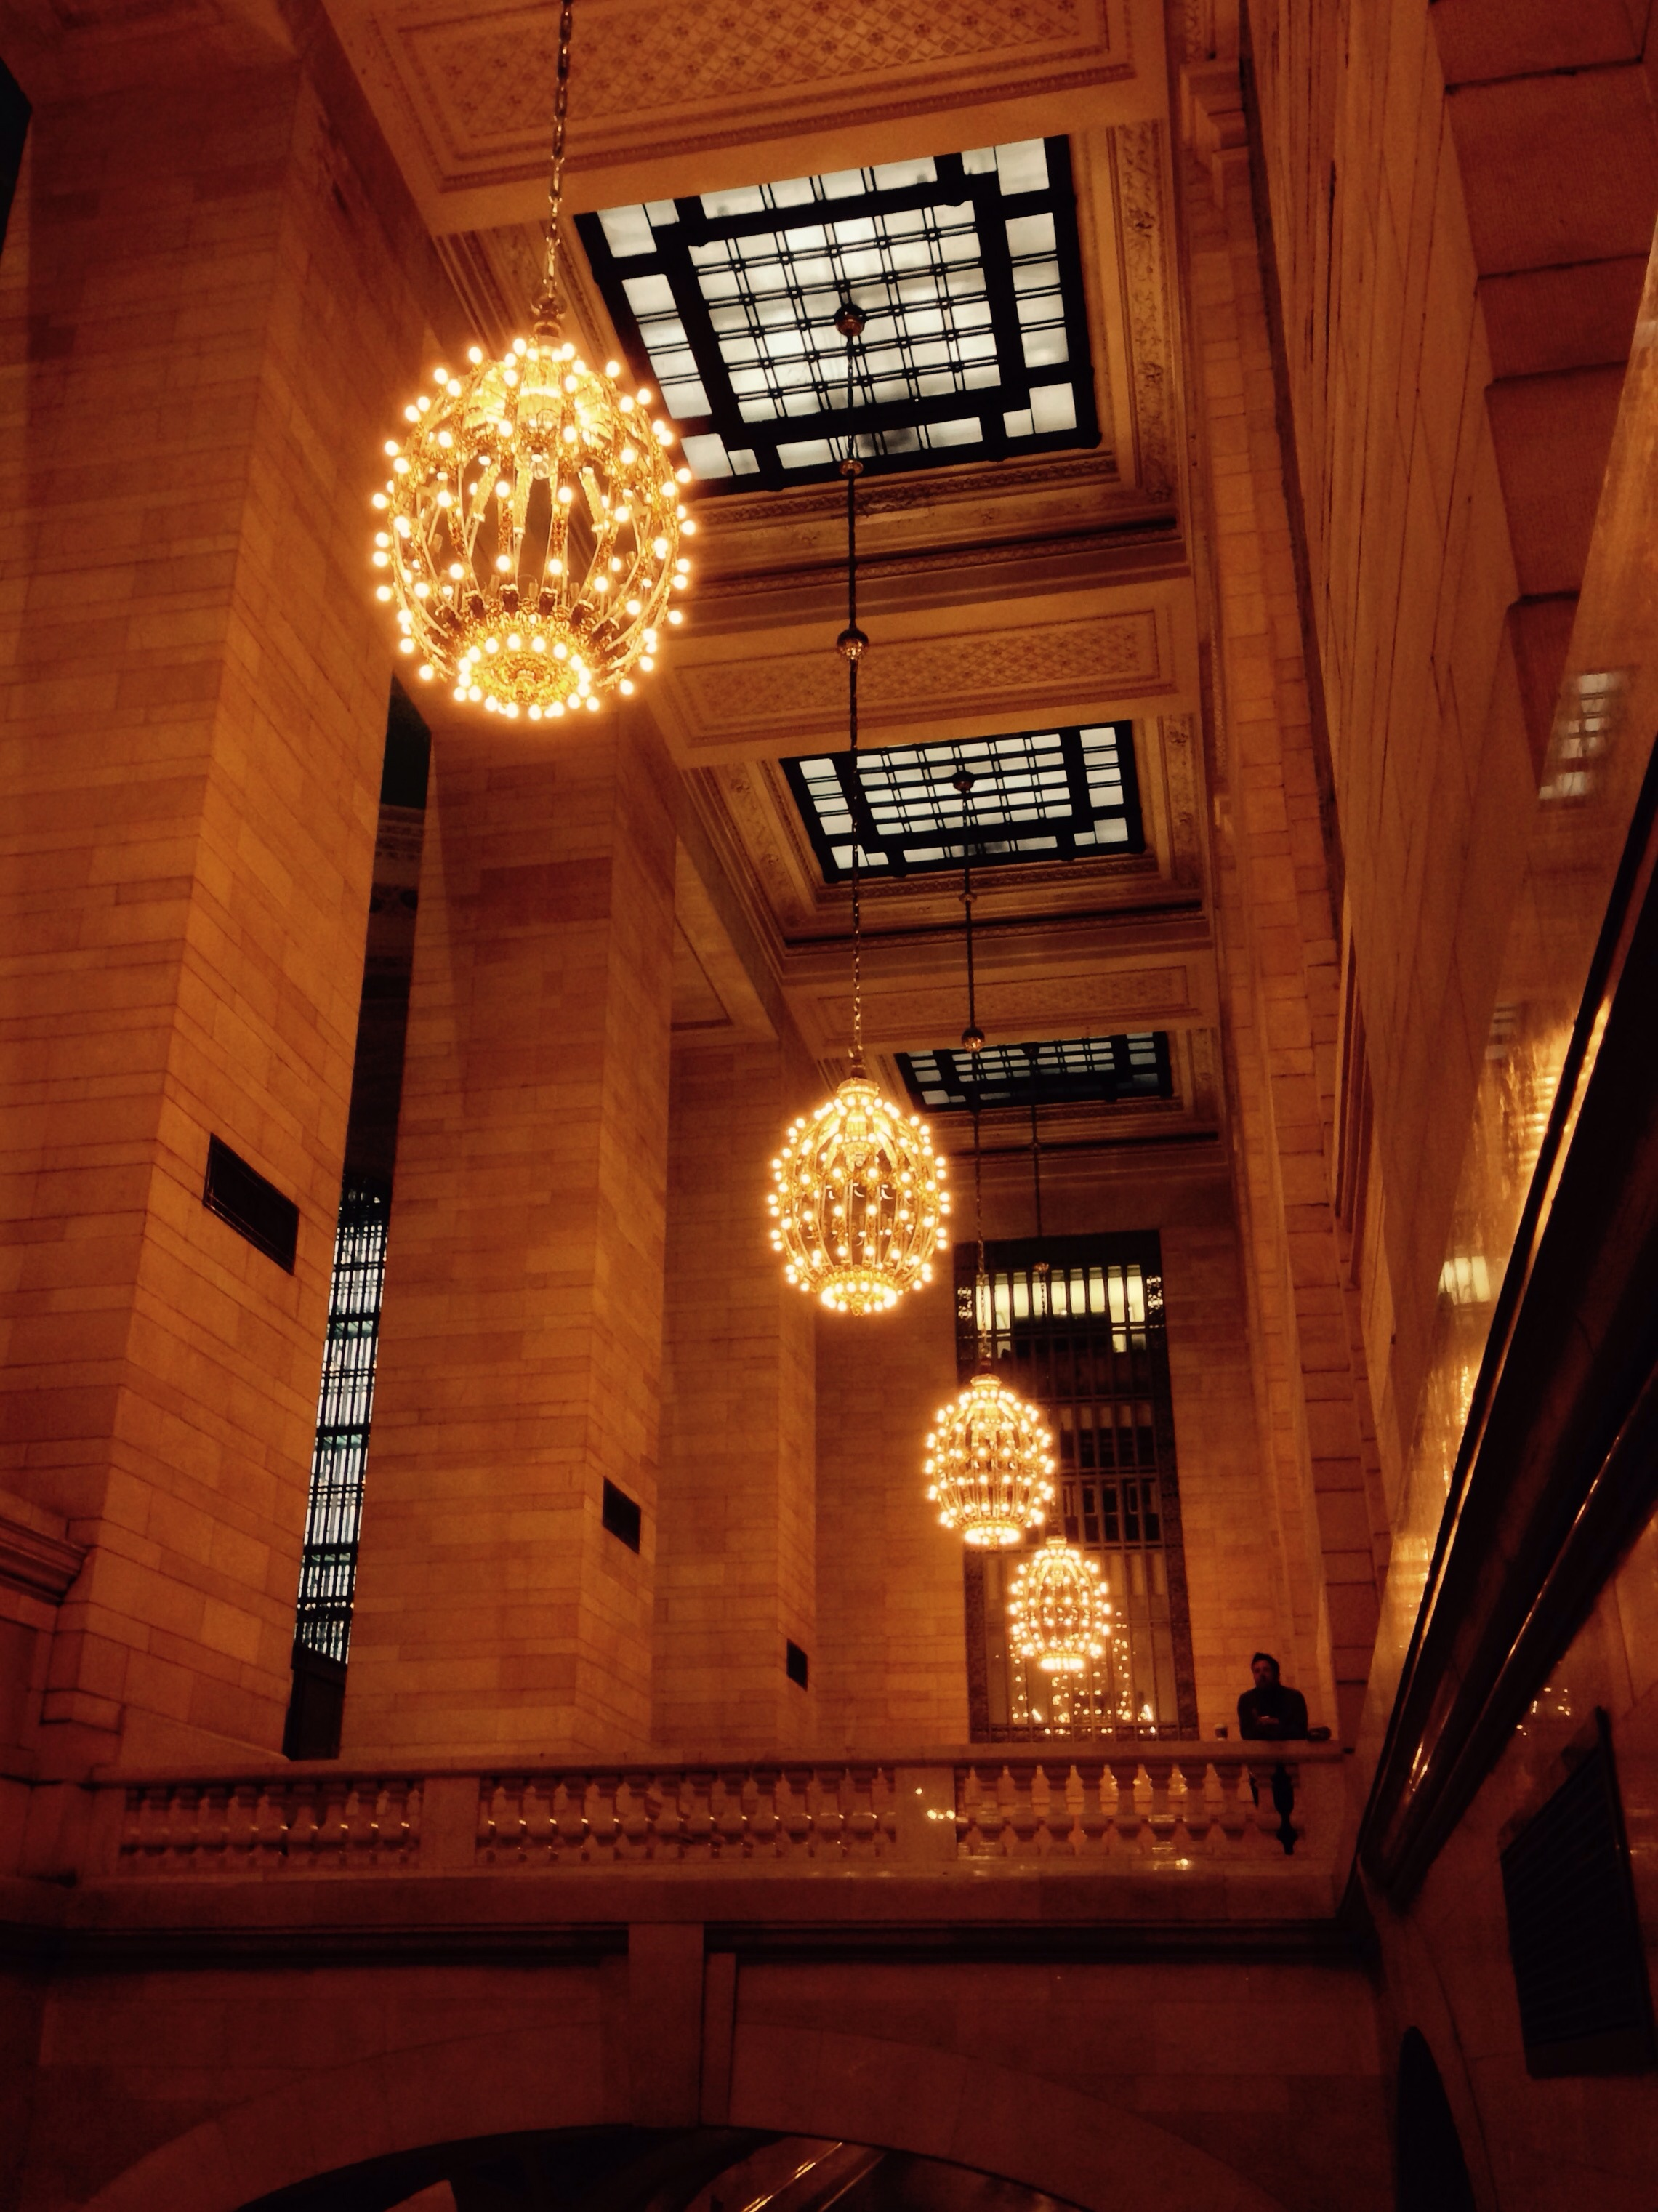 Always ending a day at Grand Central on the way home